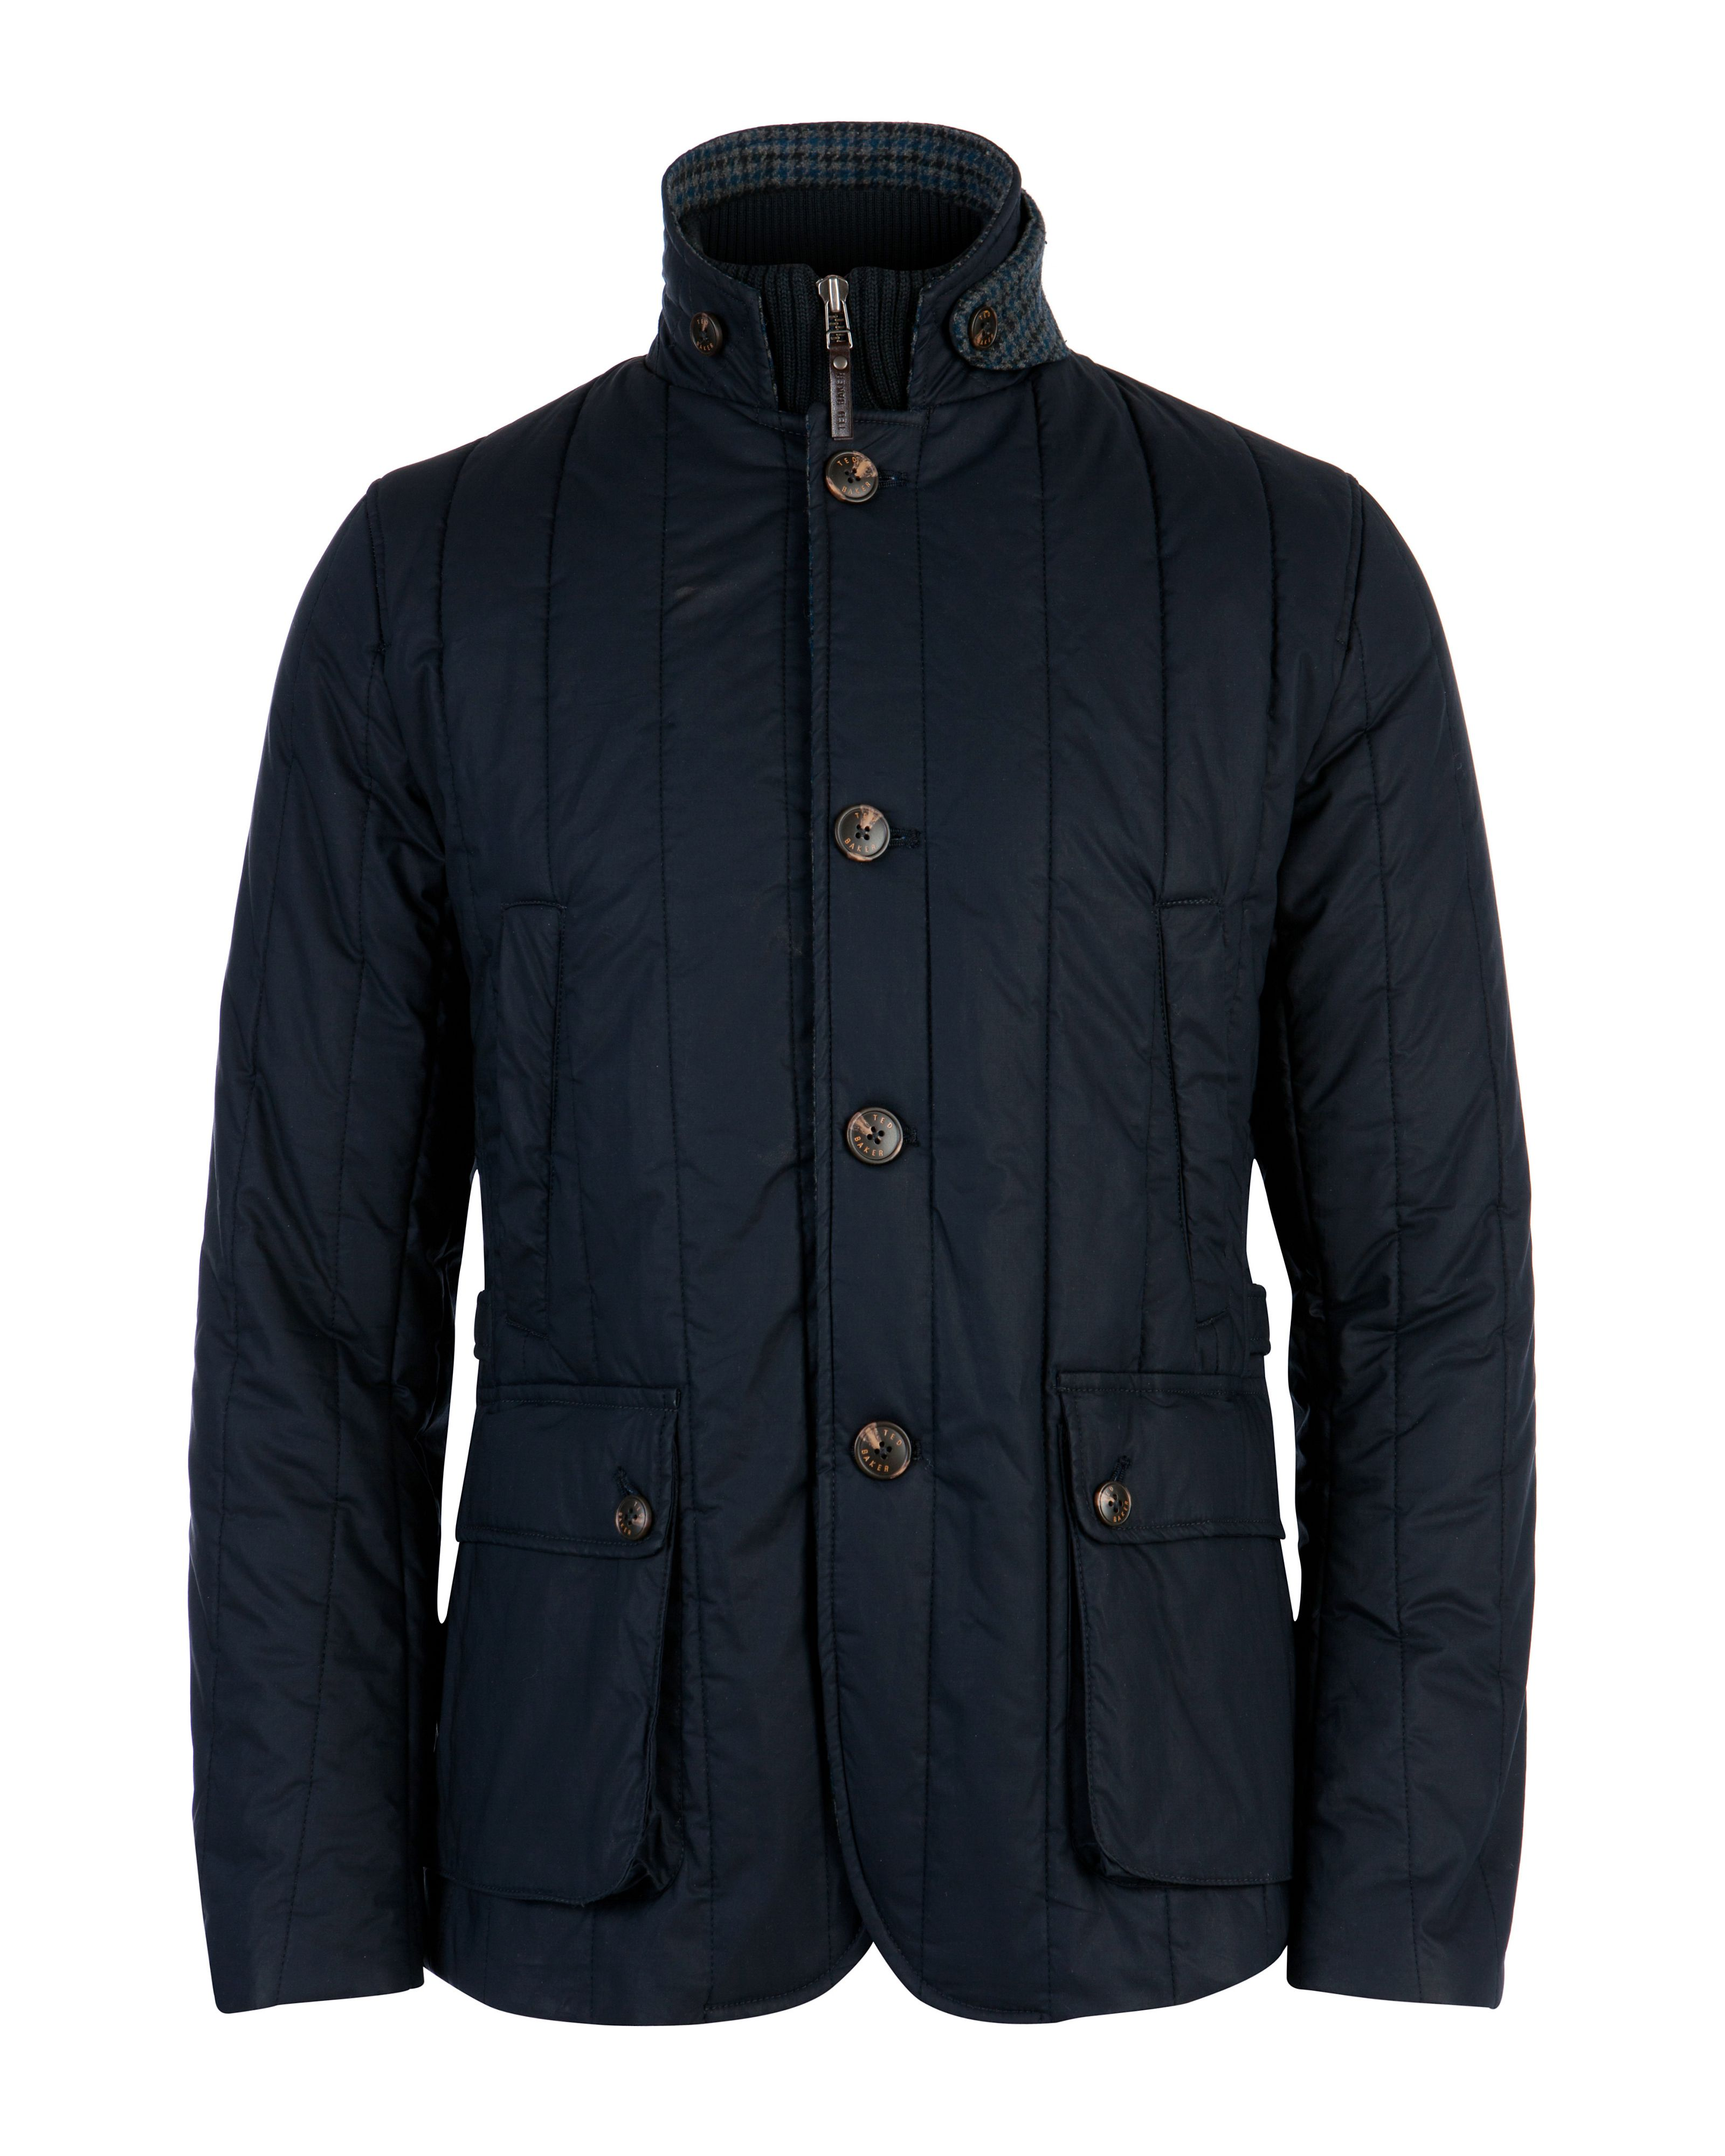 quilted j gallery jacket jackets fashion tall quilt men sussex trends of coats mens jcrew s crew